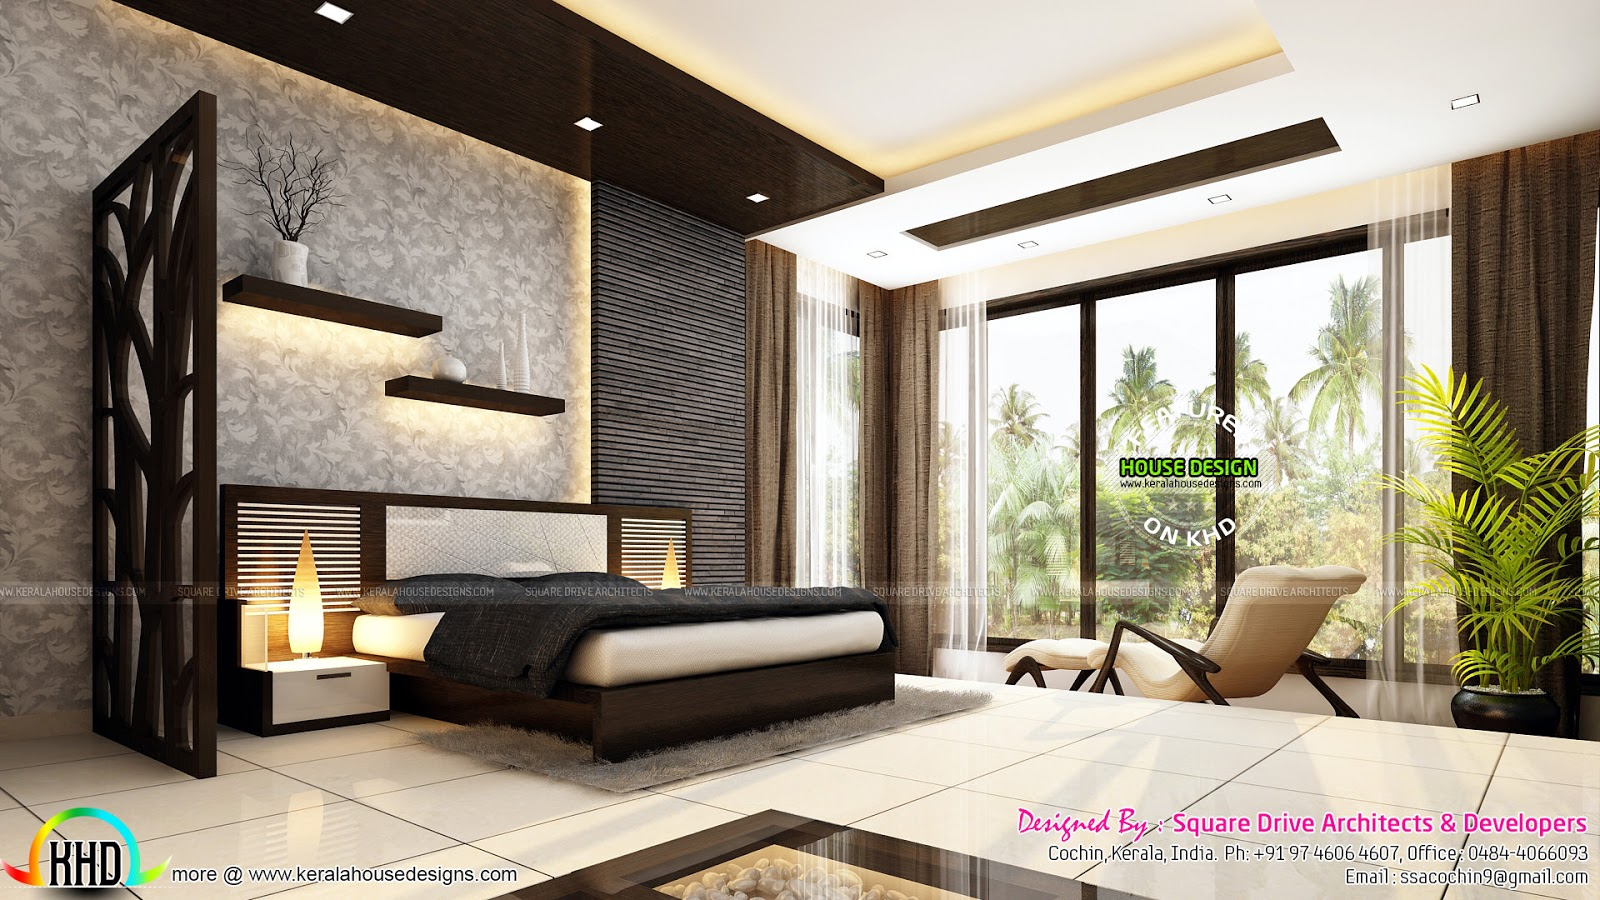 Very beautiful modern interior designs kerala home for Beautiful home designs interior